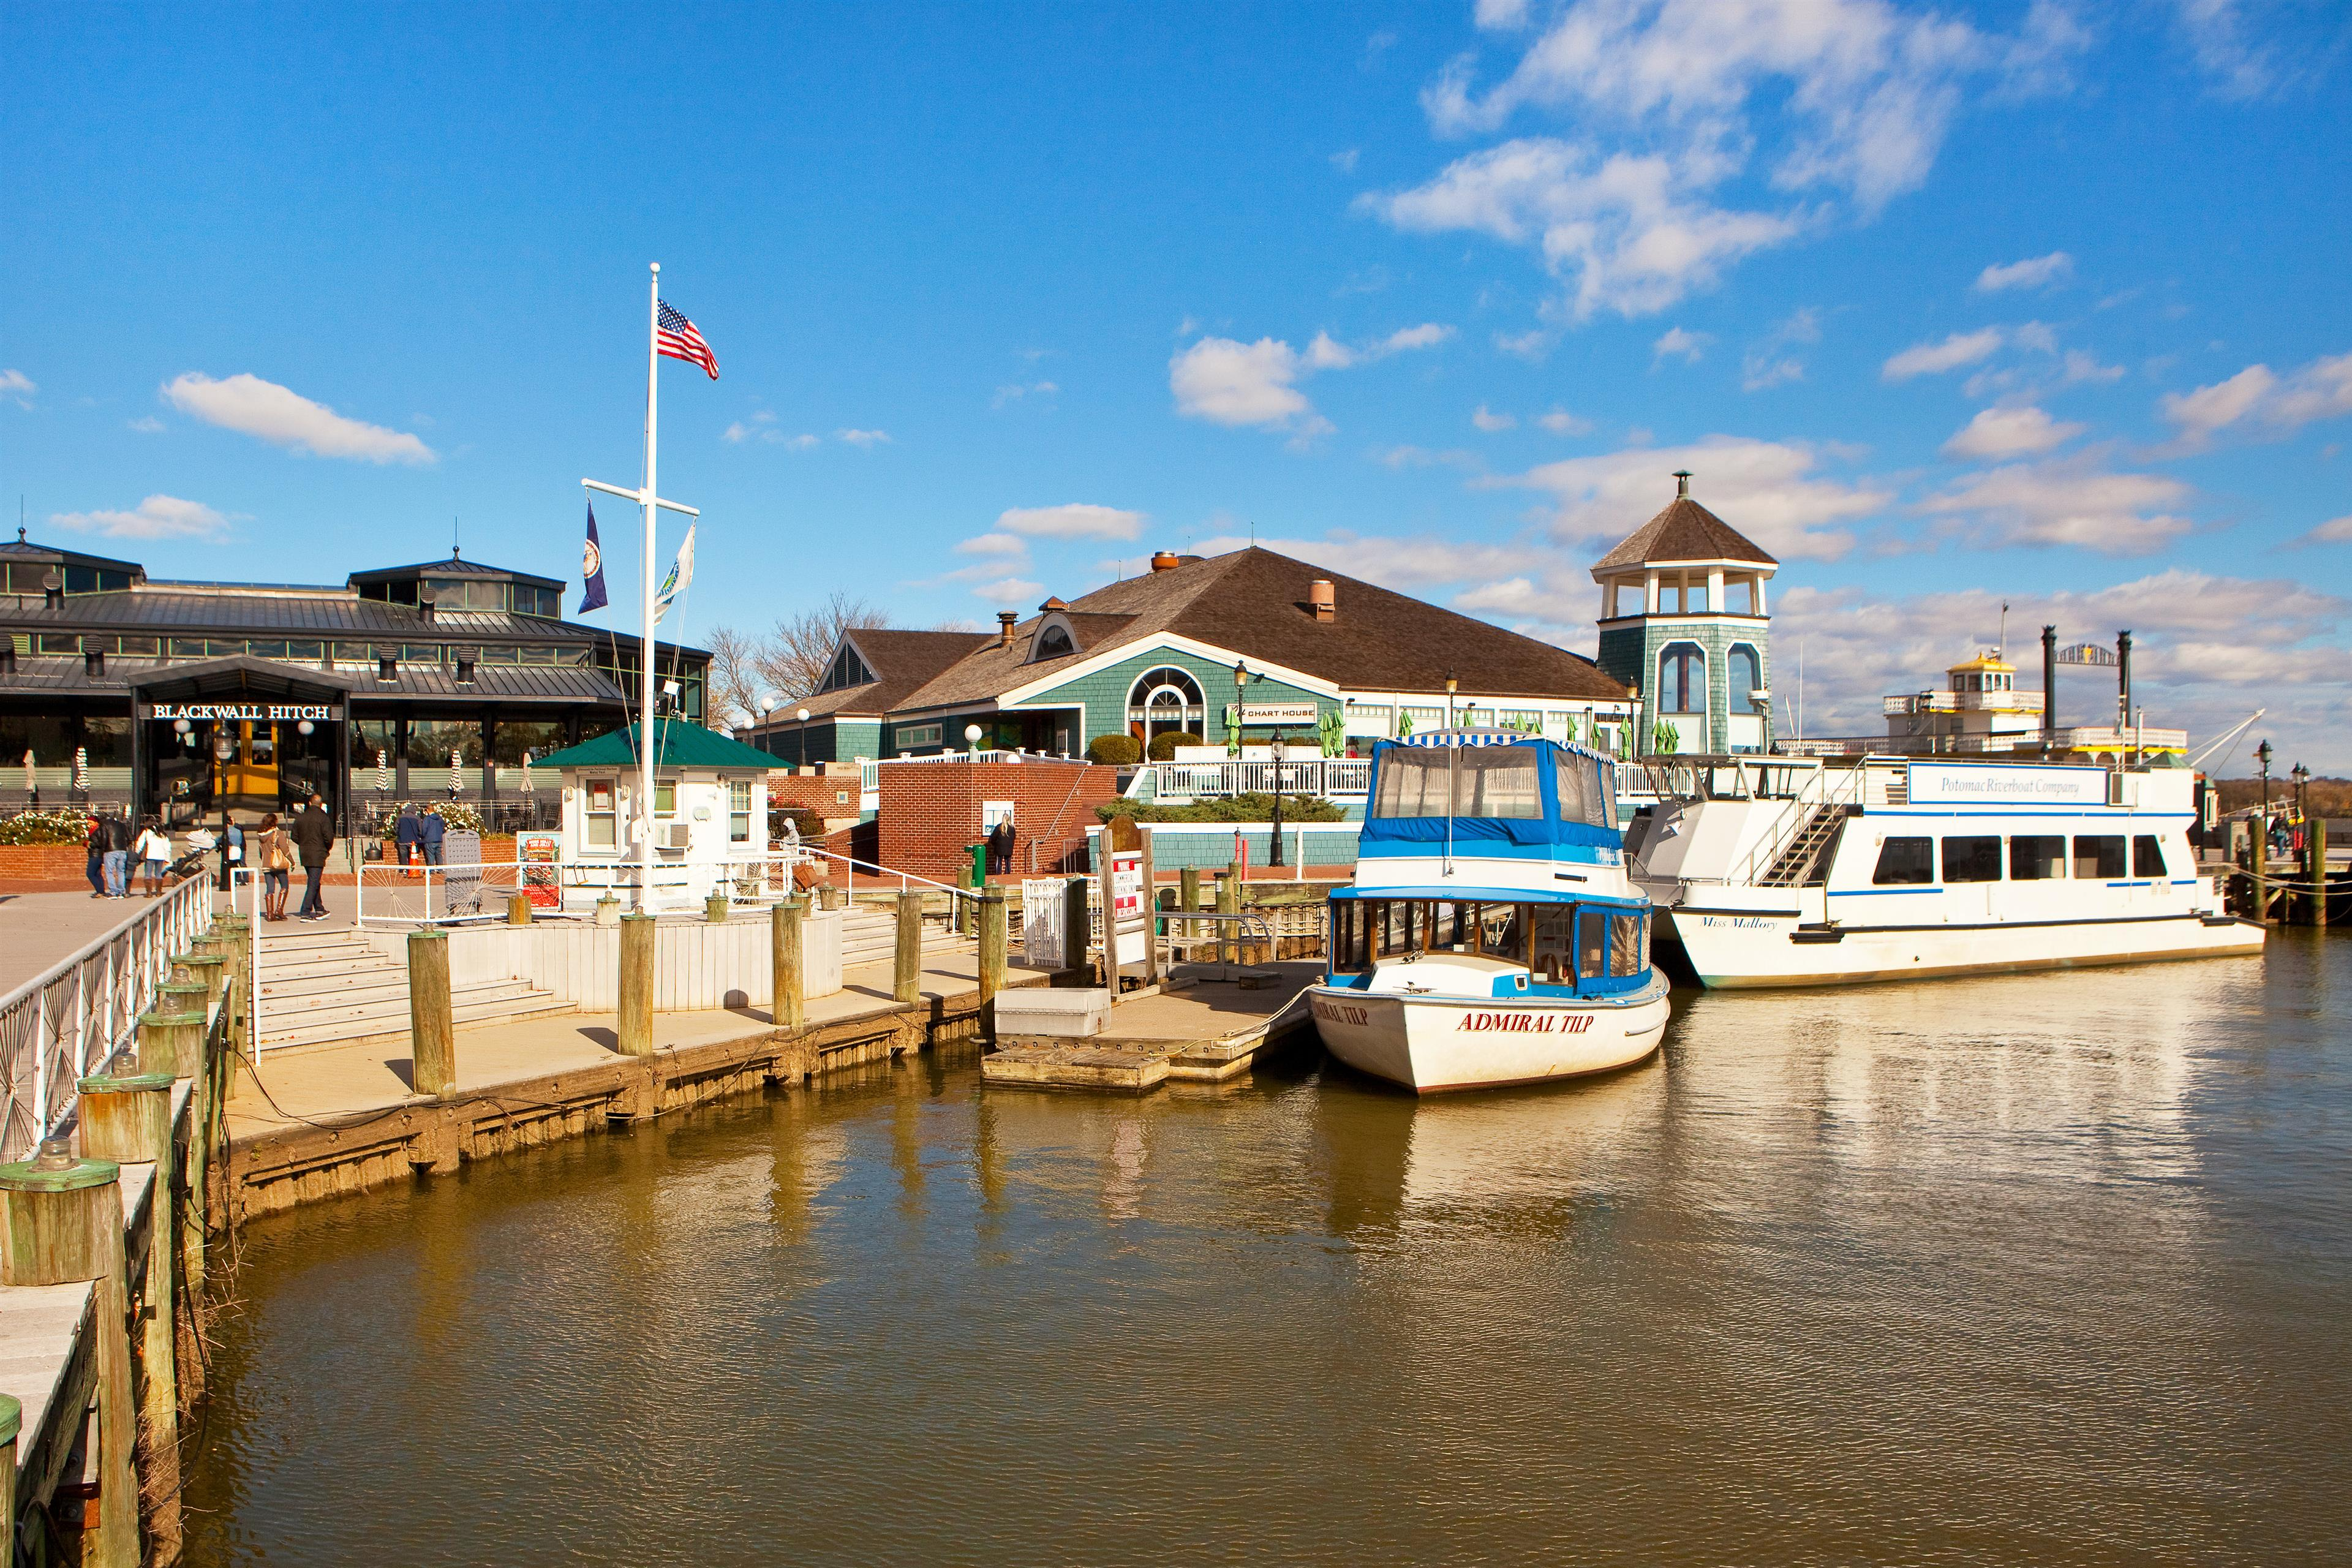 alexandria virginia enviromental policy Latest news may 24,  the virginia environmental endowment has announced awards of more than $250,000 to 13 organizations dedicated  and support coastal policy.